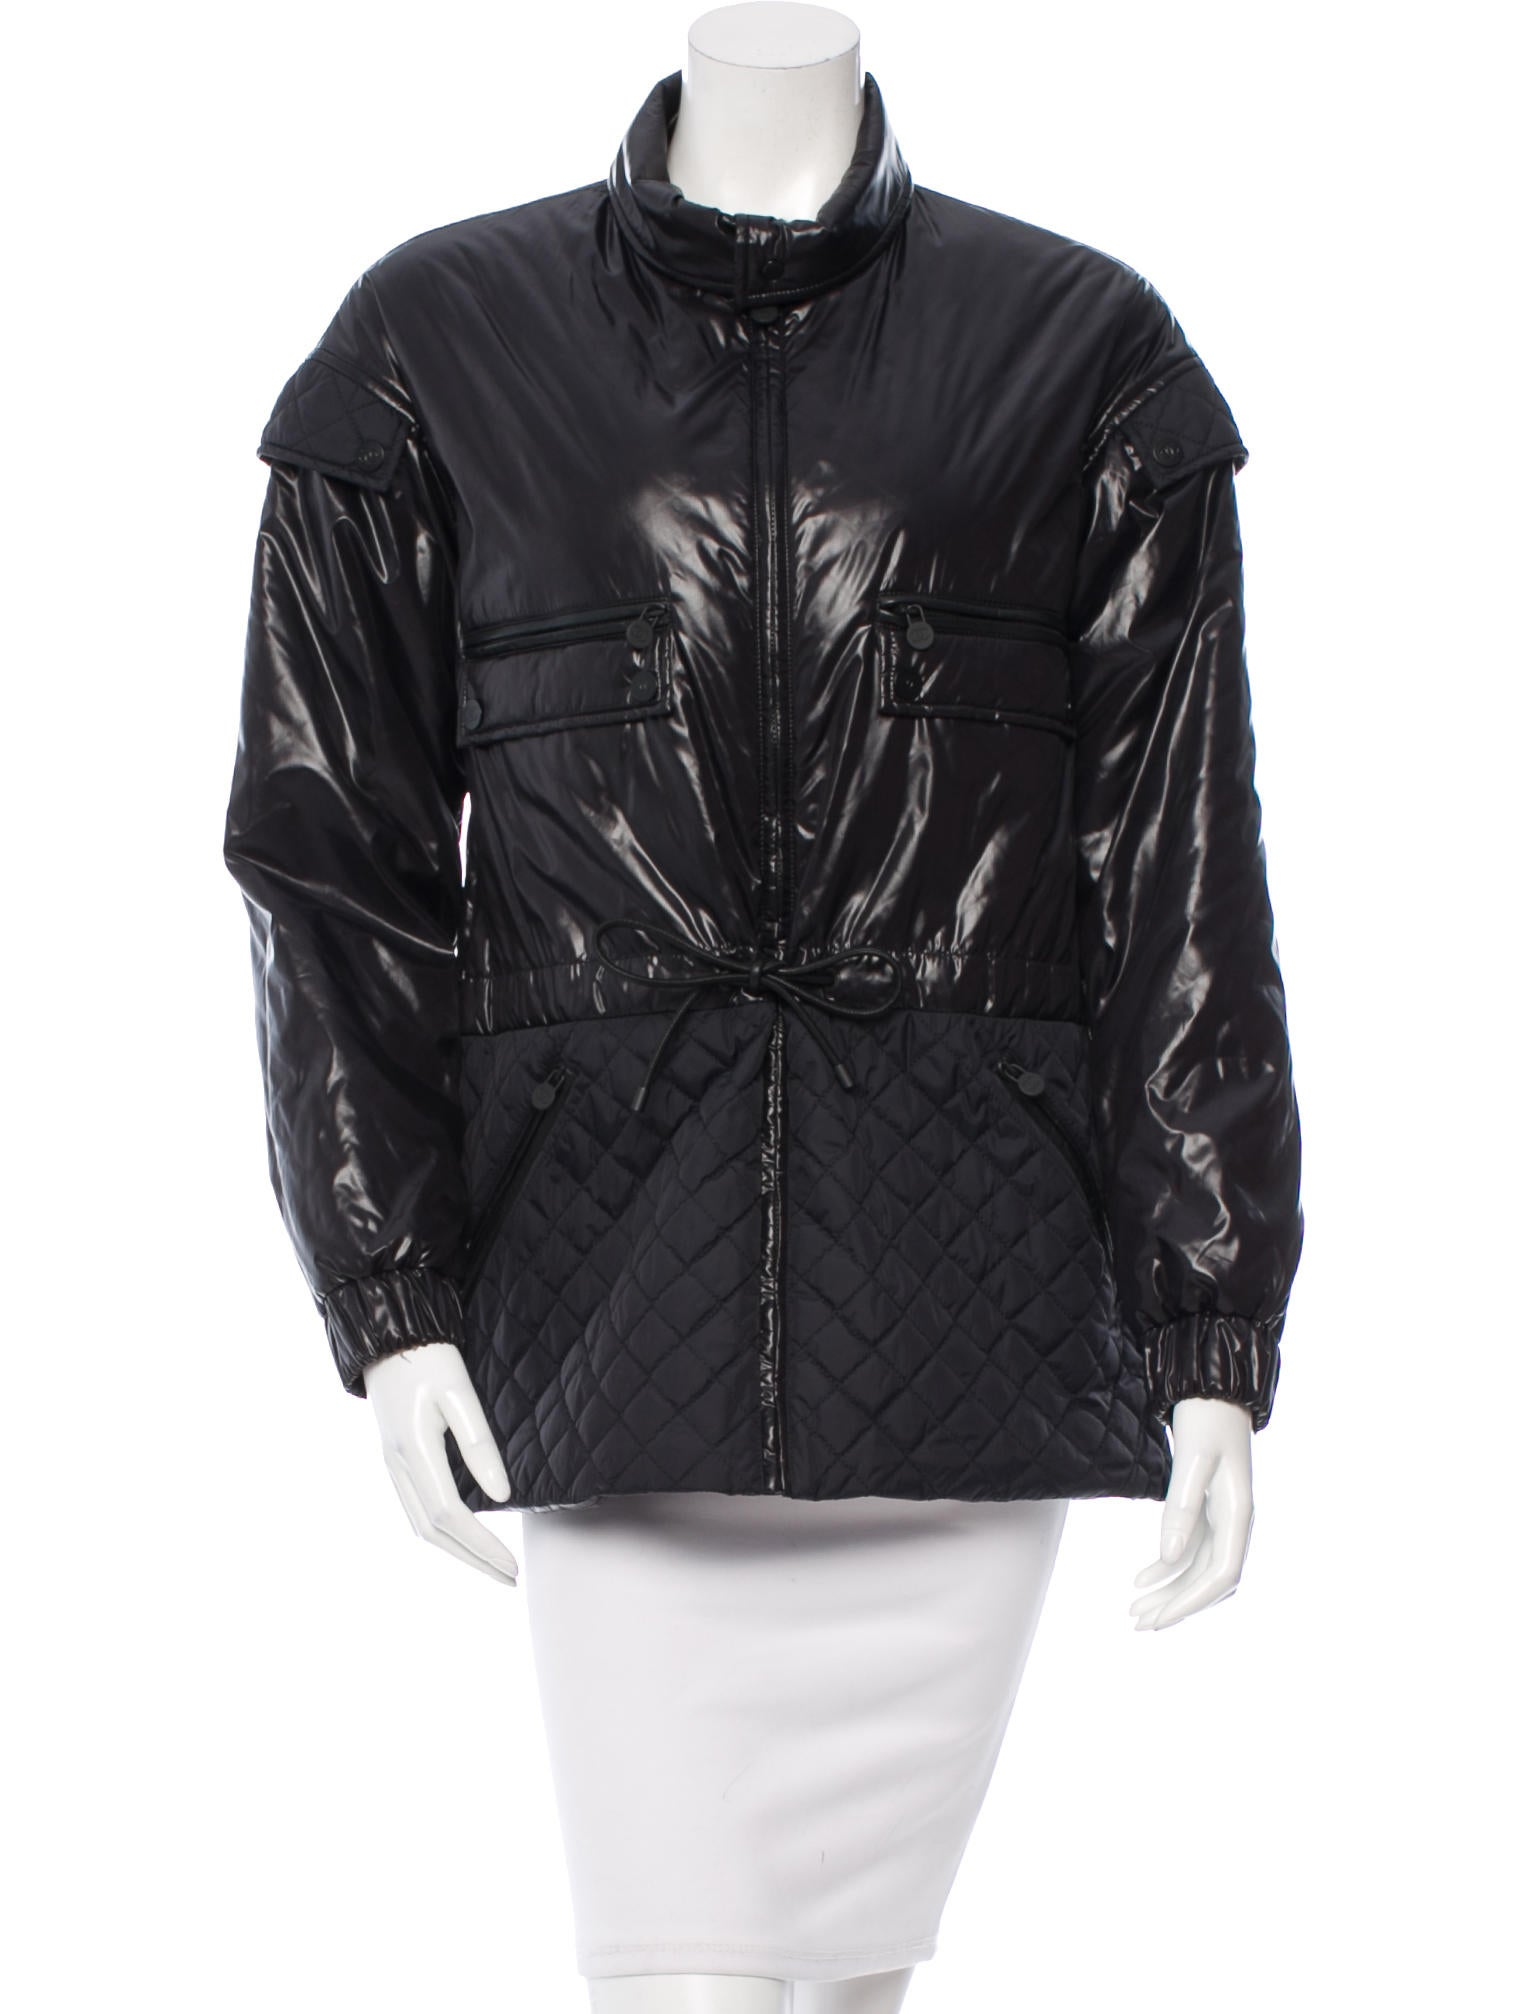 Women's Padded Jackets & Coats When temperatures dip and it's time to wrap up against the elements, Tommy Hilfiger's latest collection of women's padded coats will help you keep warm in style. Our iconic women's puffer coat is just the thing to help you face the cold winter months.